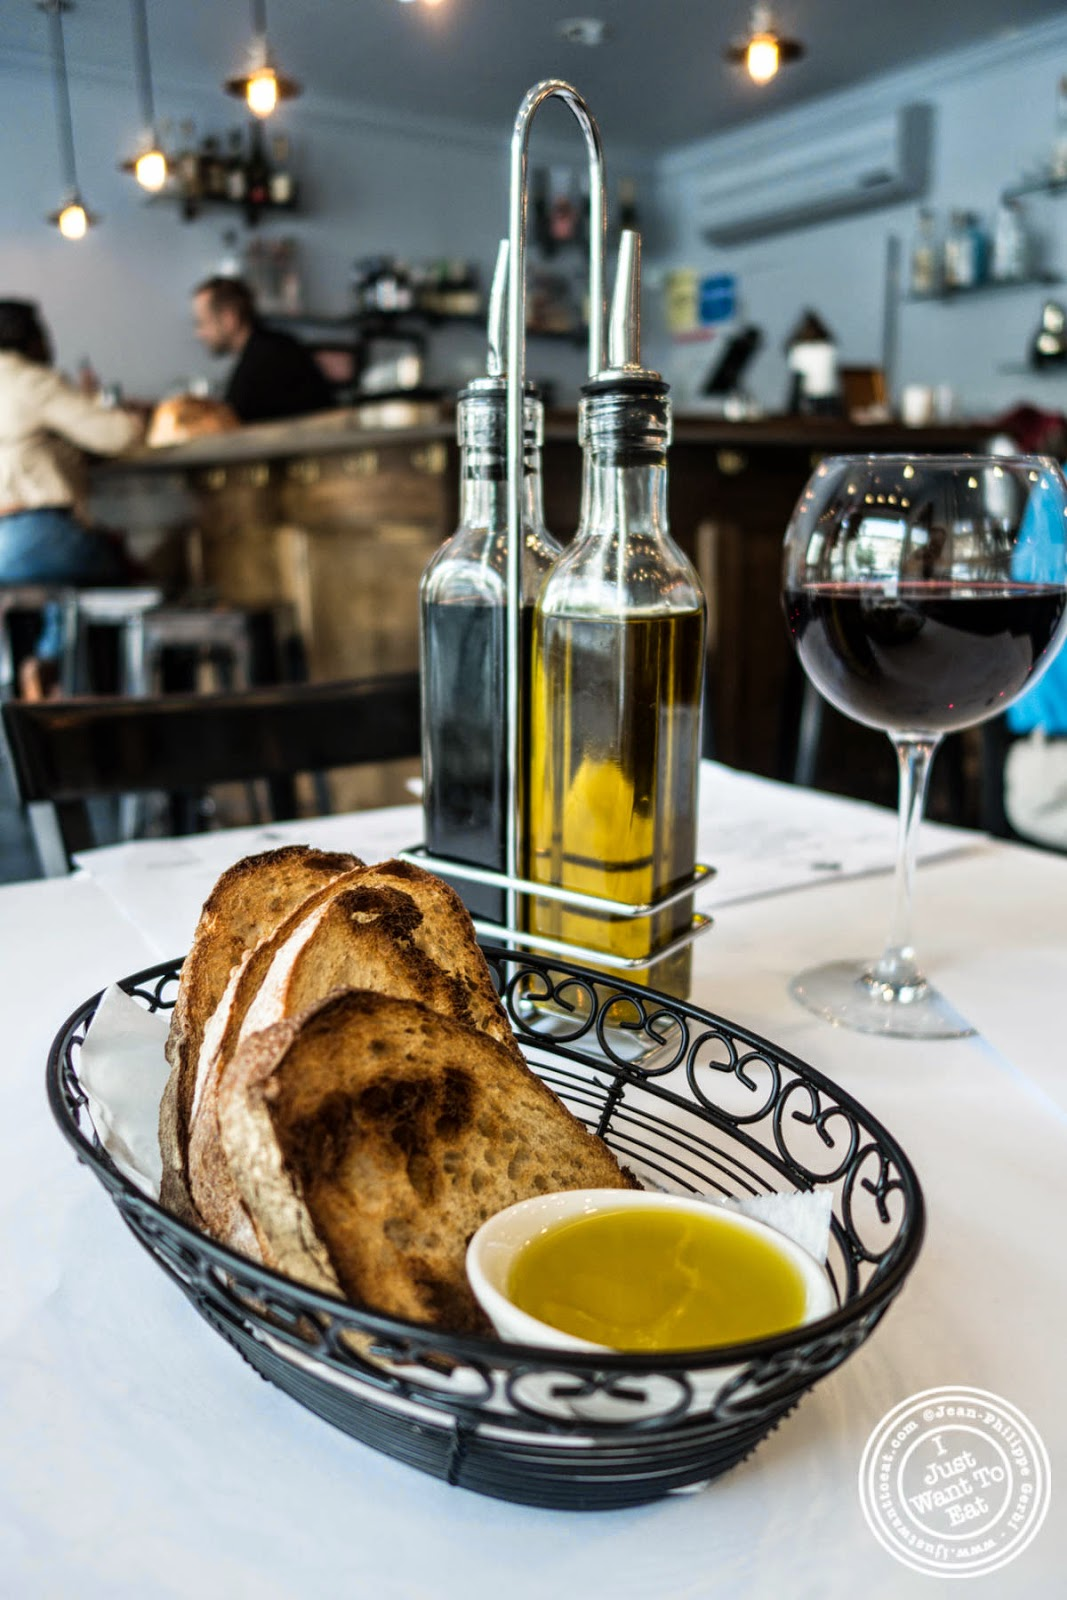 image of bread basket at Frere de Lys, French restaurant on the Upper East Side, NY